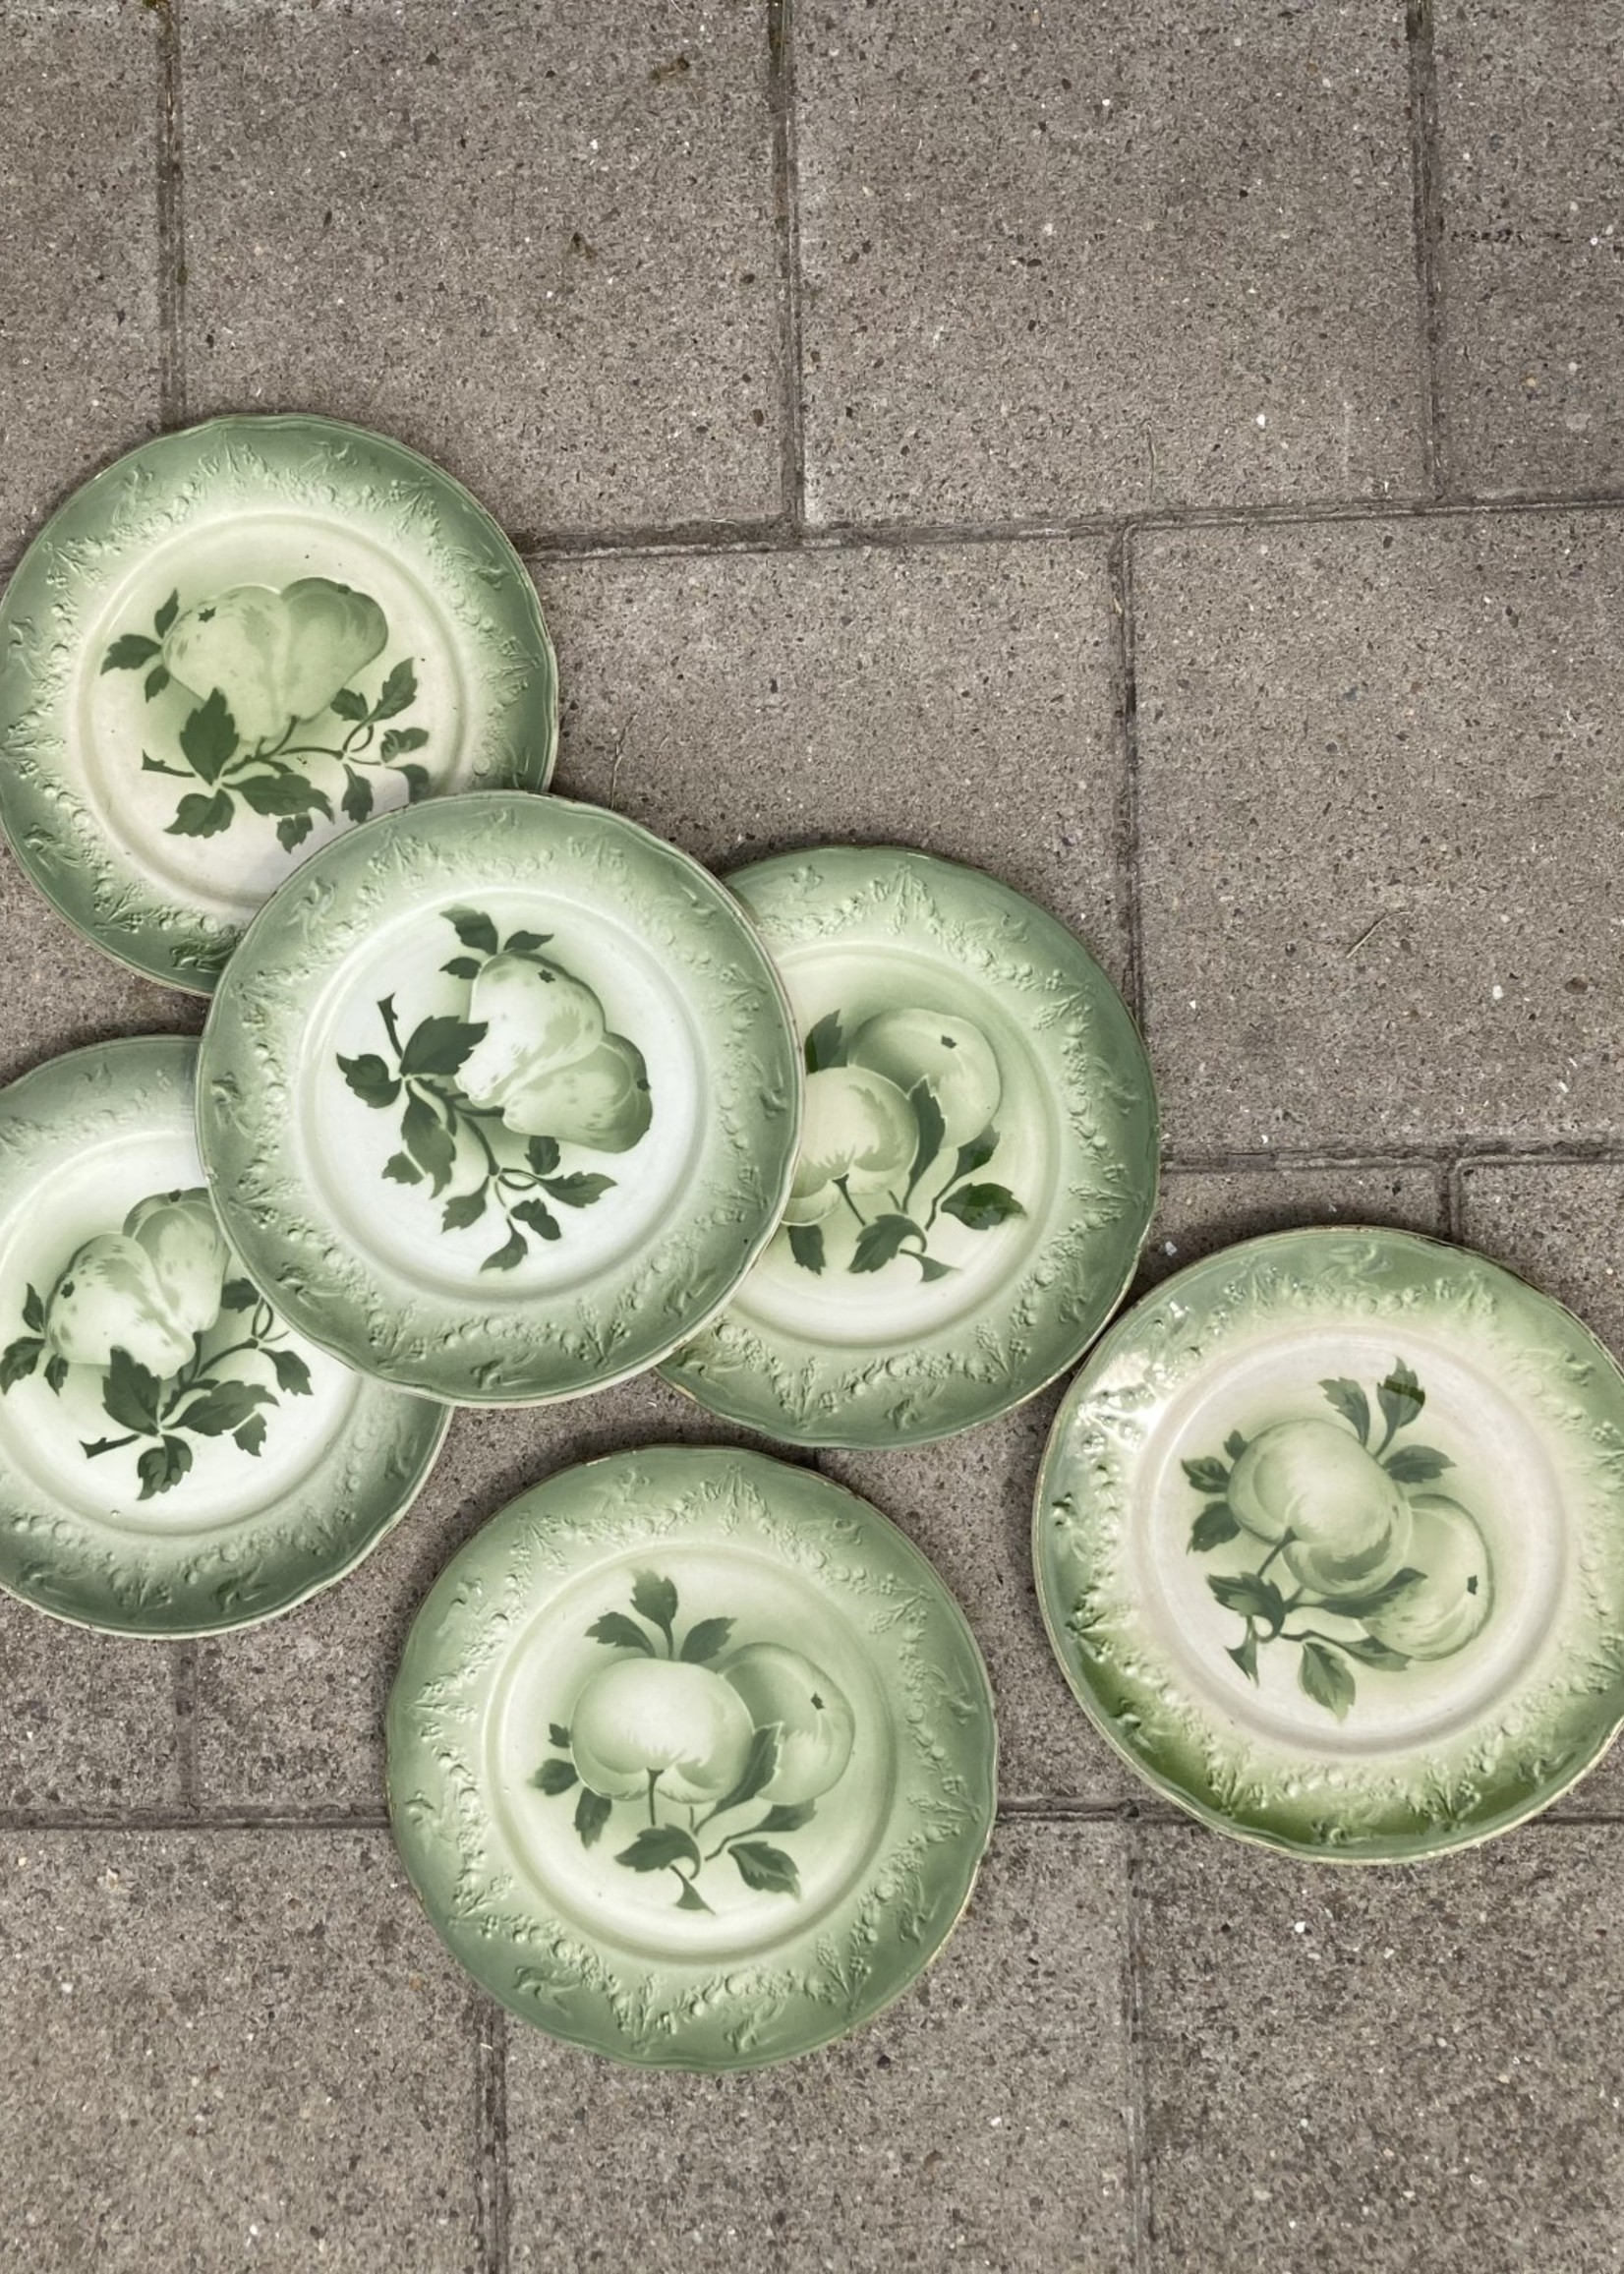 Luneville Small plates green decor by Luneville